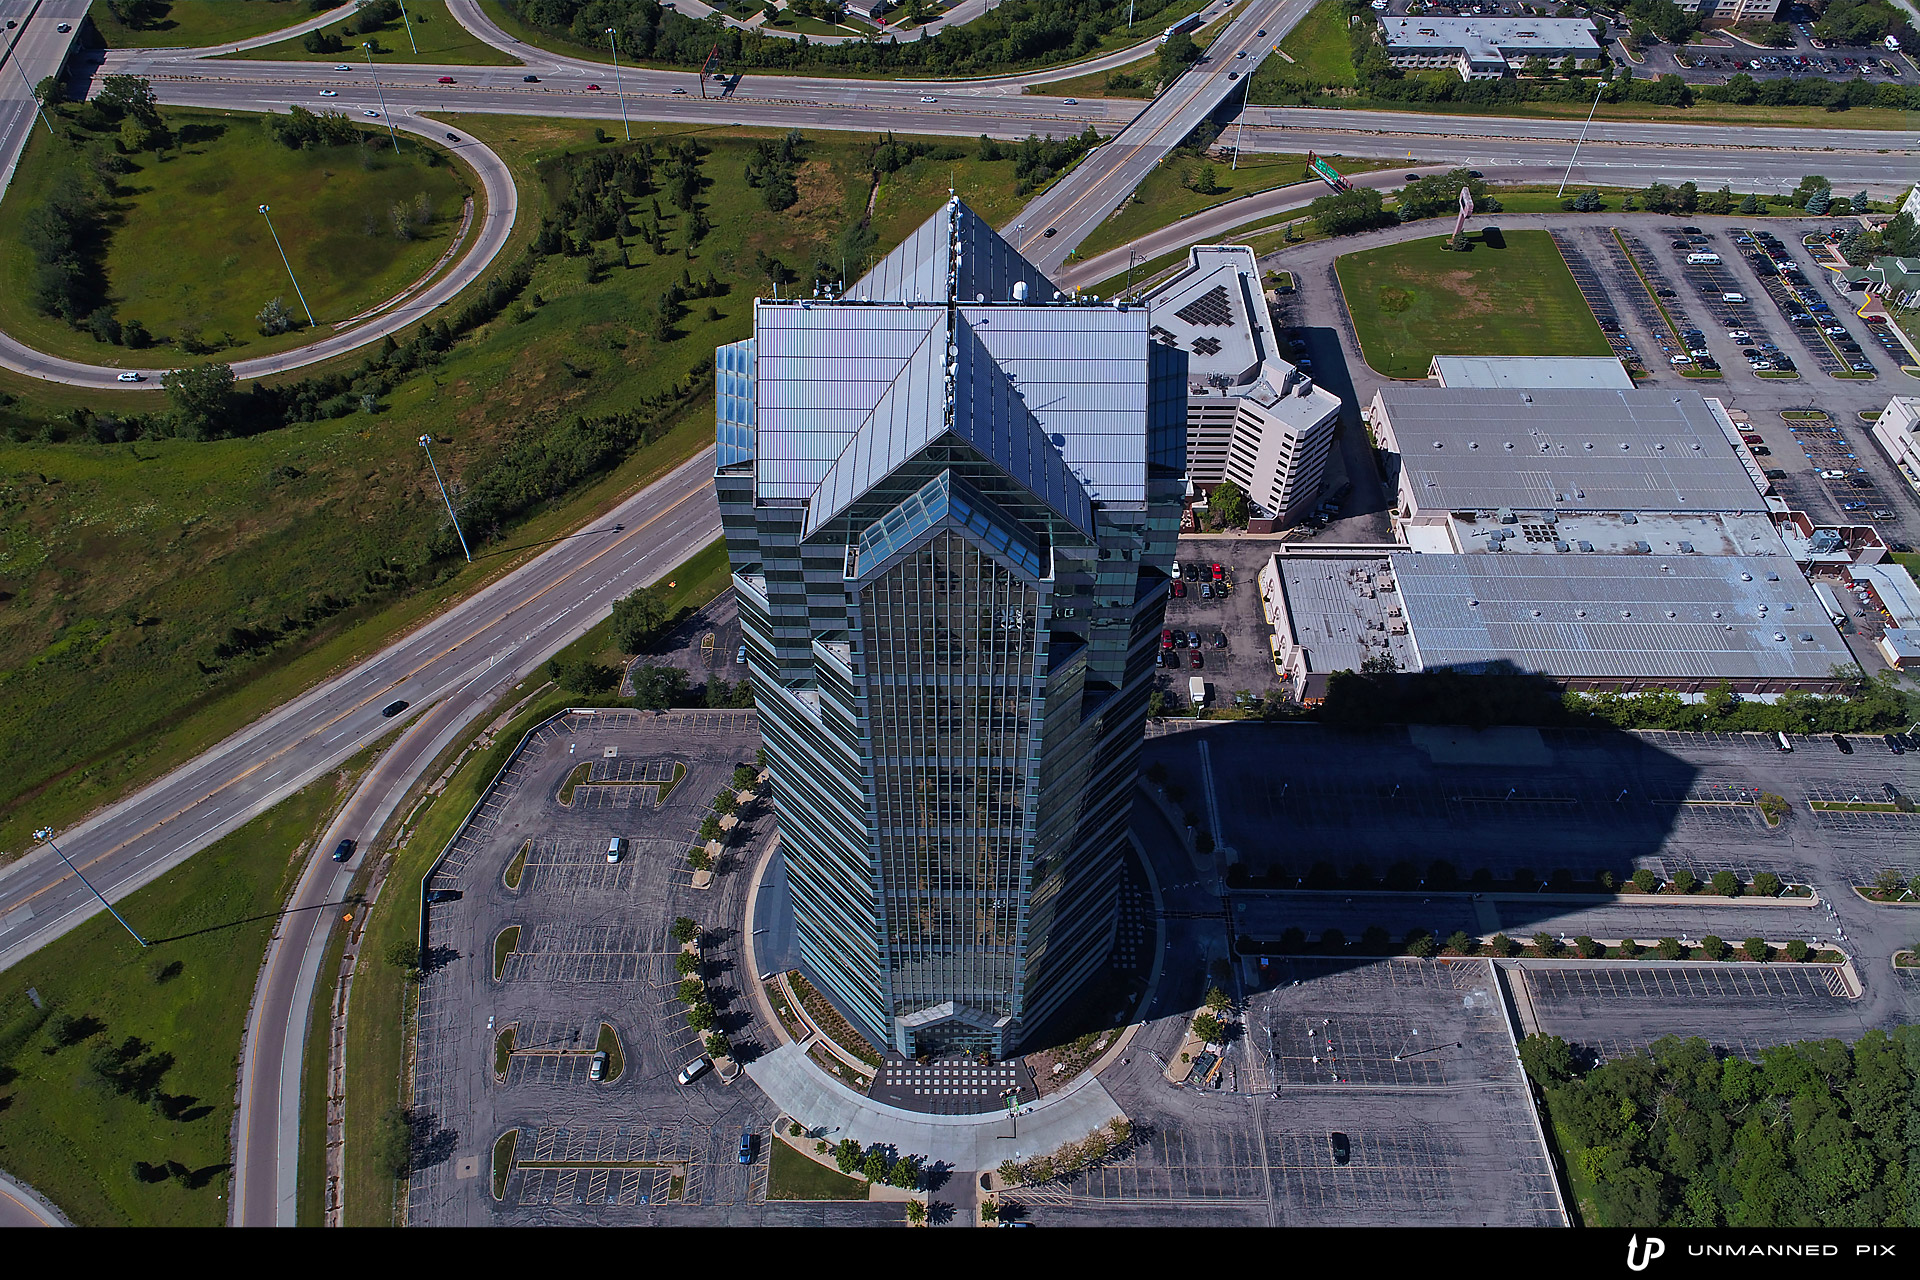 aerial view of the oakbrook terrace tower, facing north, photographed by jacob rosenfeld for unmannedpix.com